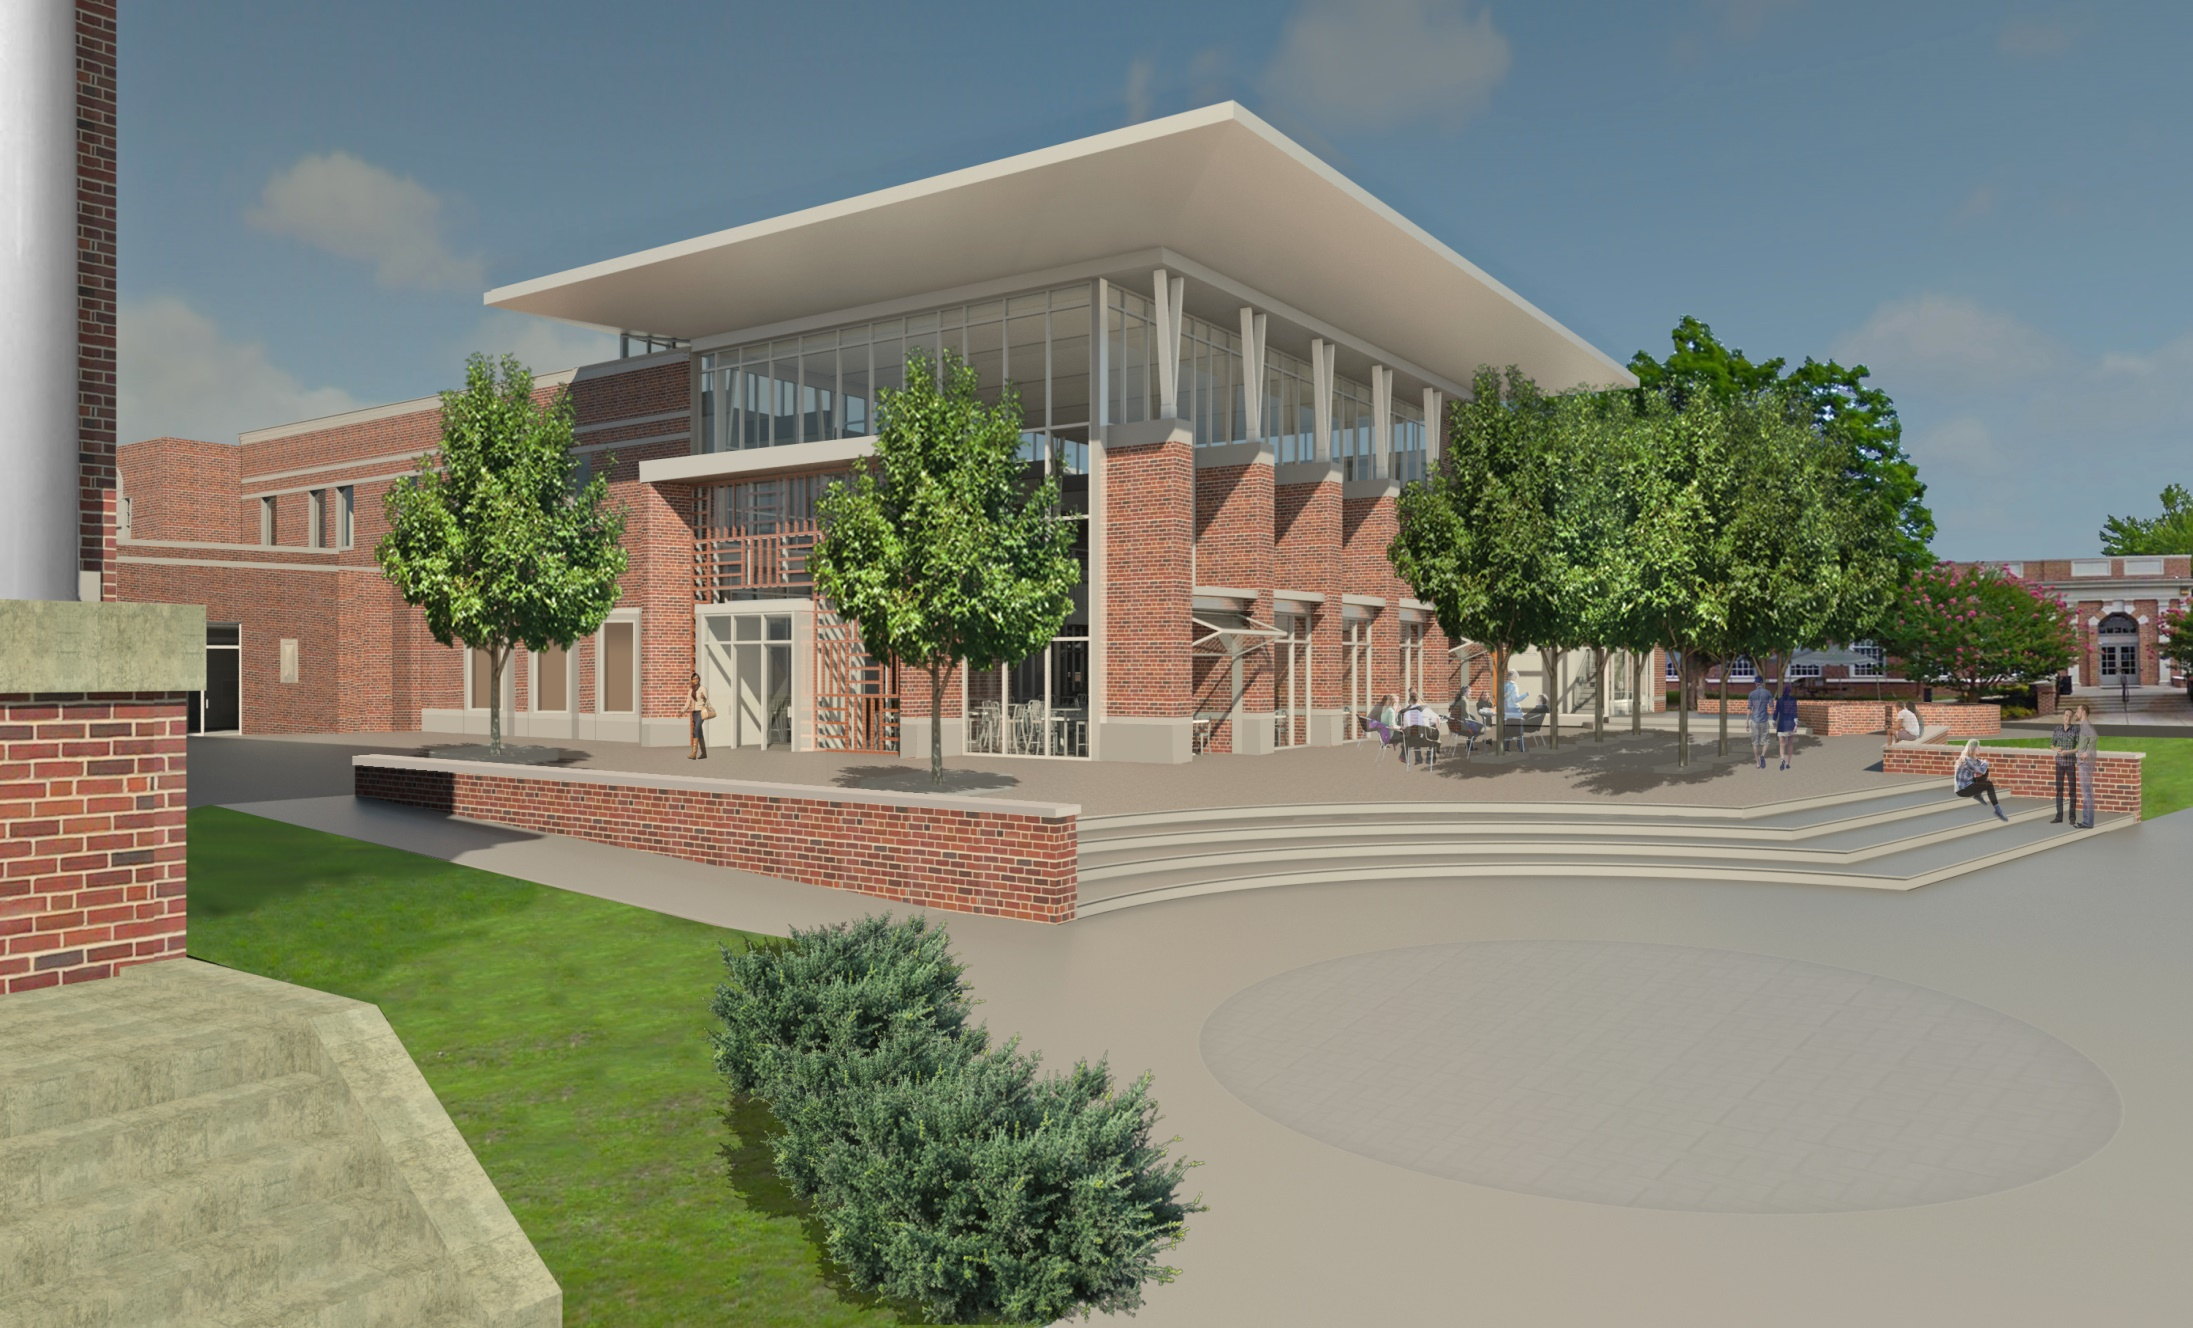 A rendering of the re-designed College Union Building Photo courtesy of Gettysburg College